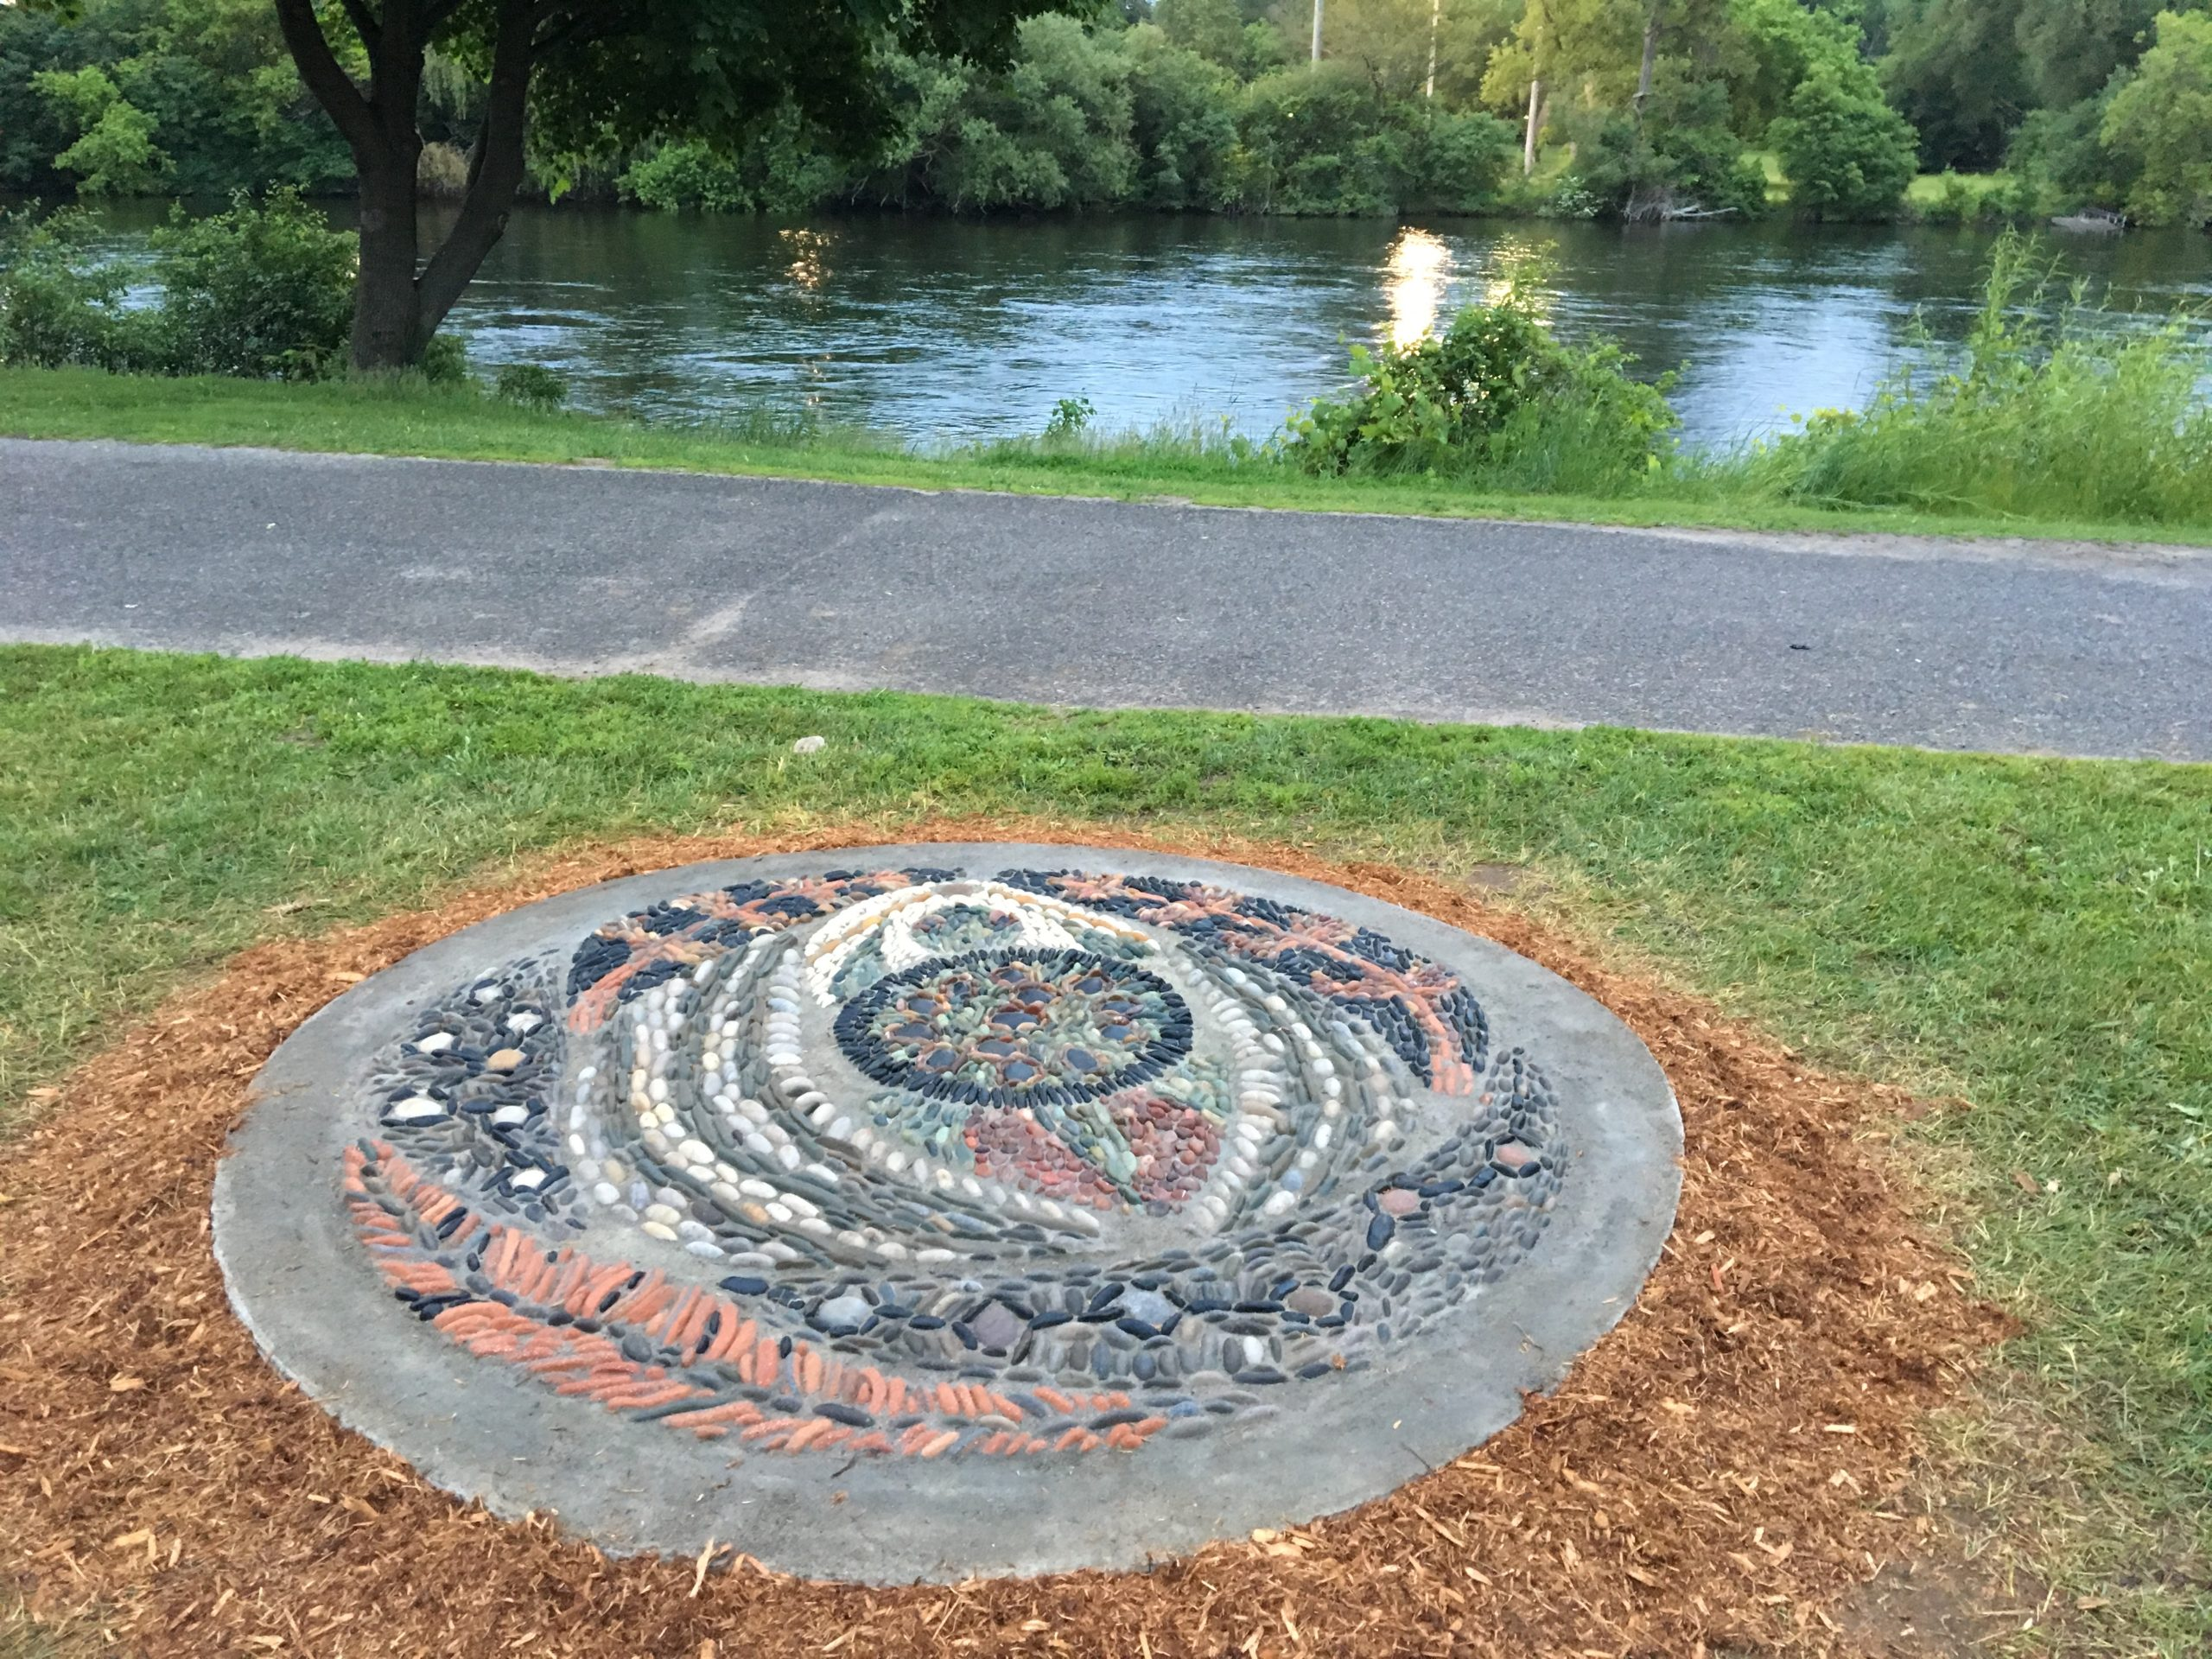 A two metre in diameter stone mosaic is in the foreground. The mosaic features the image of a turtle (Turtle Island), surrounded by cedar trees and water. It's made of red, black, white, tan and grey stones, and surrounded by cedar mulch and grass. In the background, an asphalt path, the Otonobee river, green grass and trees.